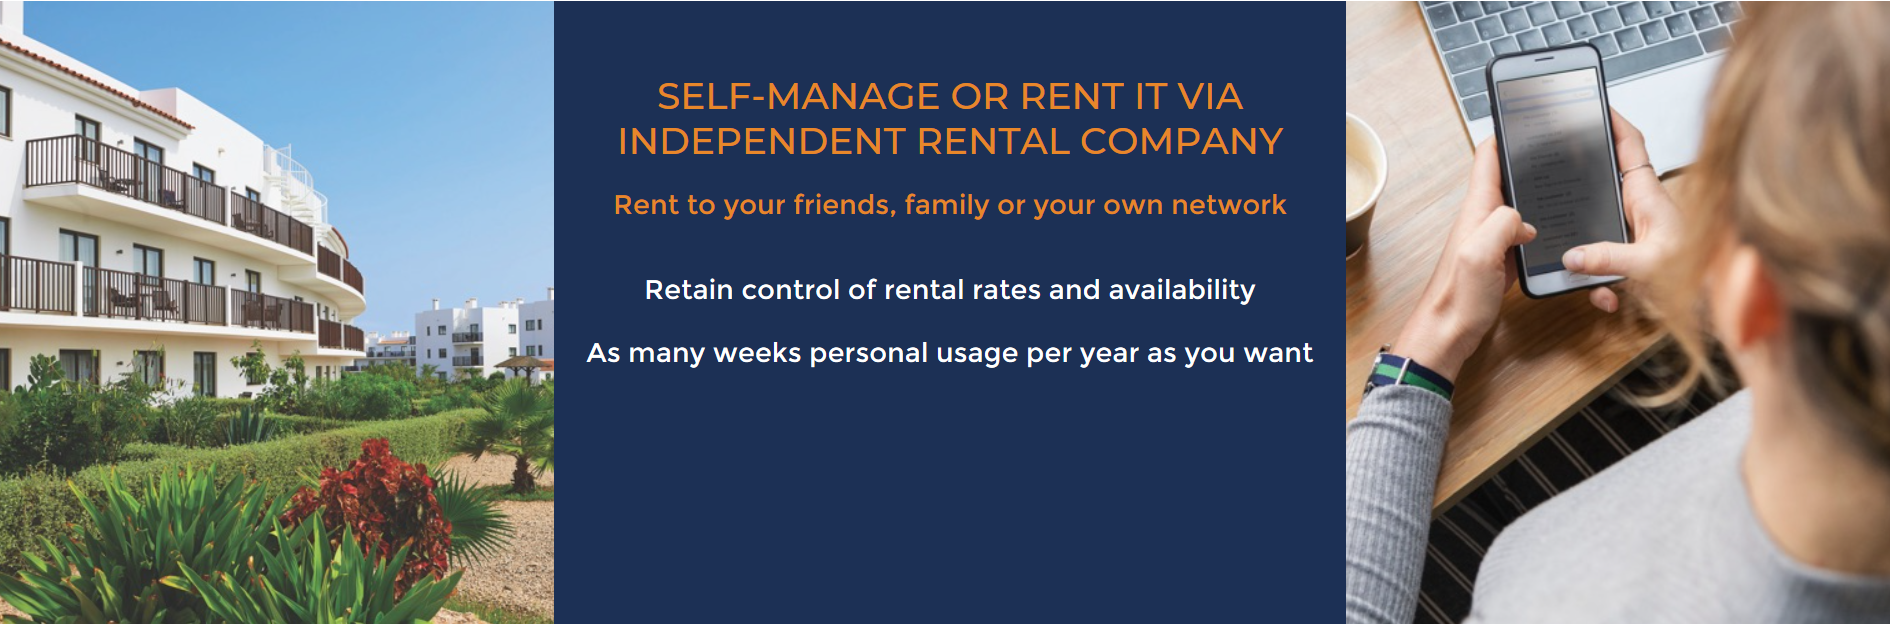 Self Manage or Rent via Independent Co.